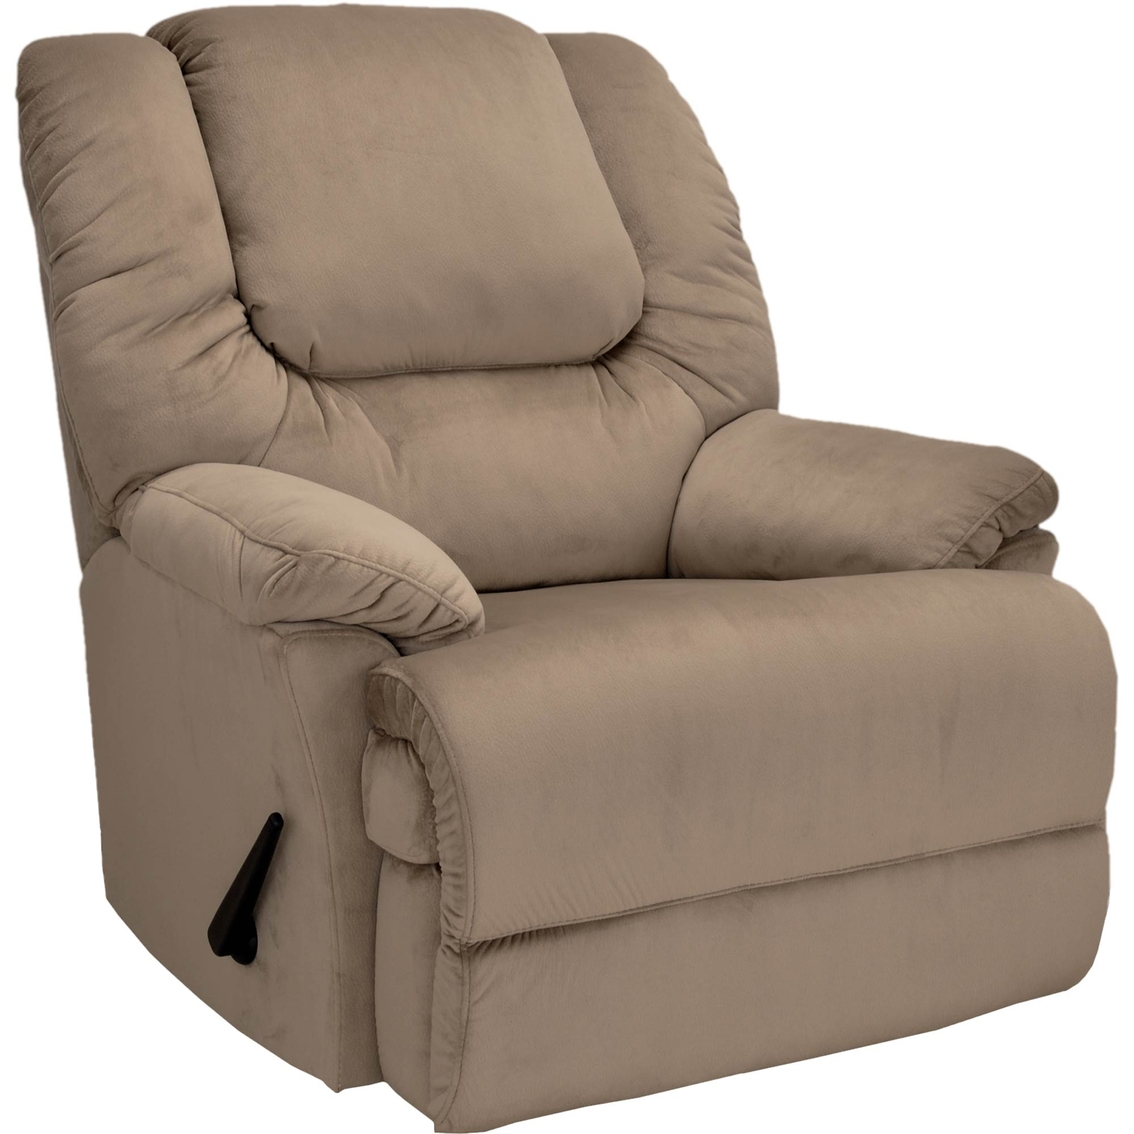 Franklin Kinzie Power Recliner  sc 1 st  Exchange & Franklin Kinzie Power Recliner | Chairs \u0026 Recliners | Home ... islam-shia.org